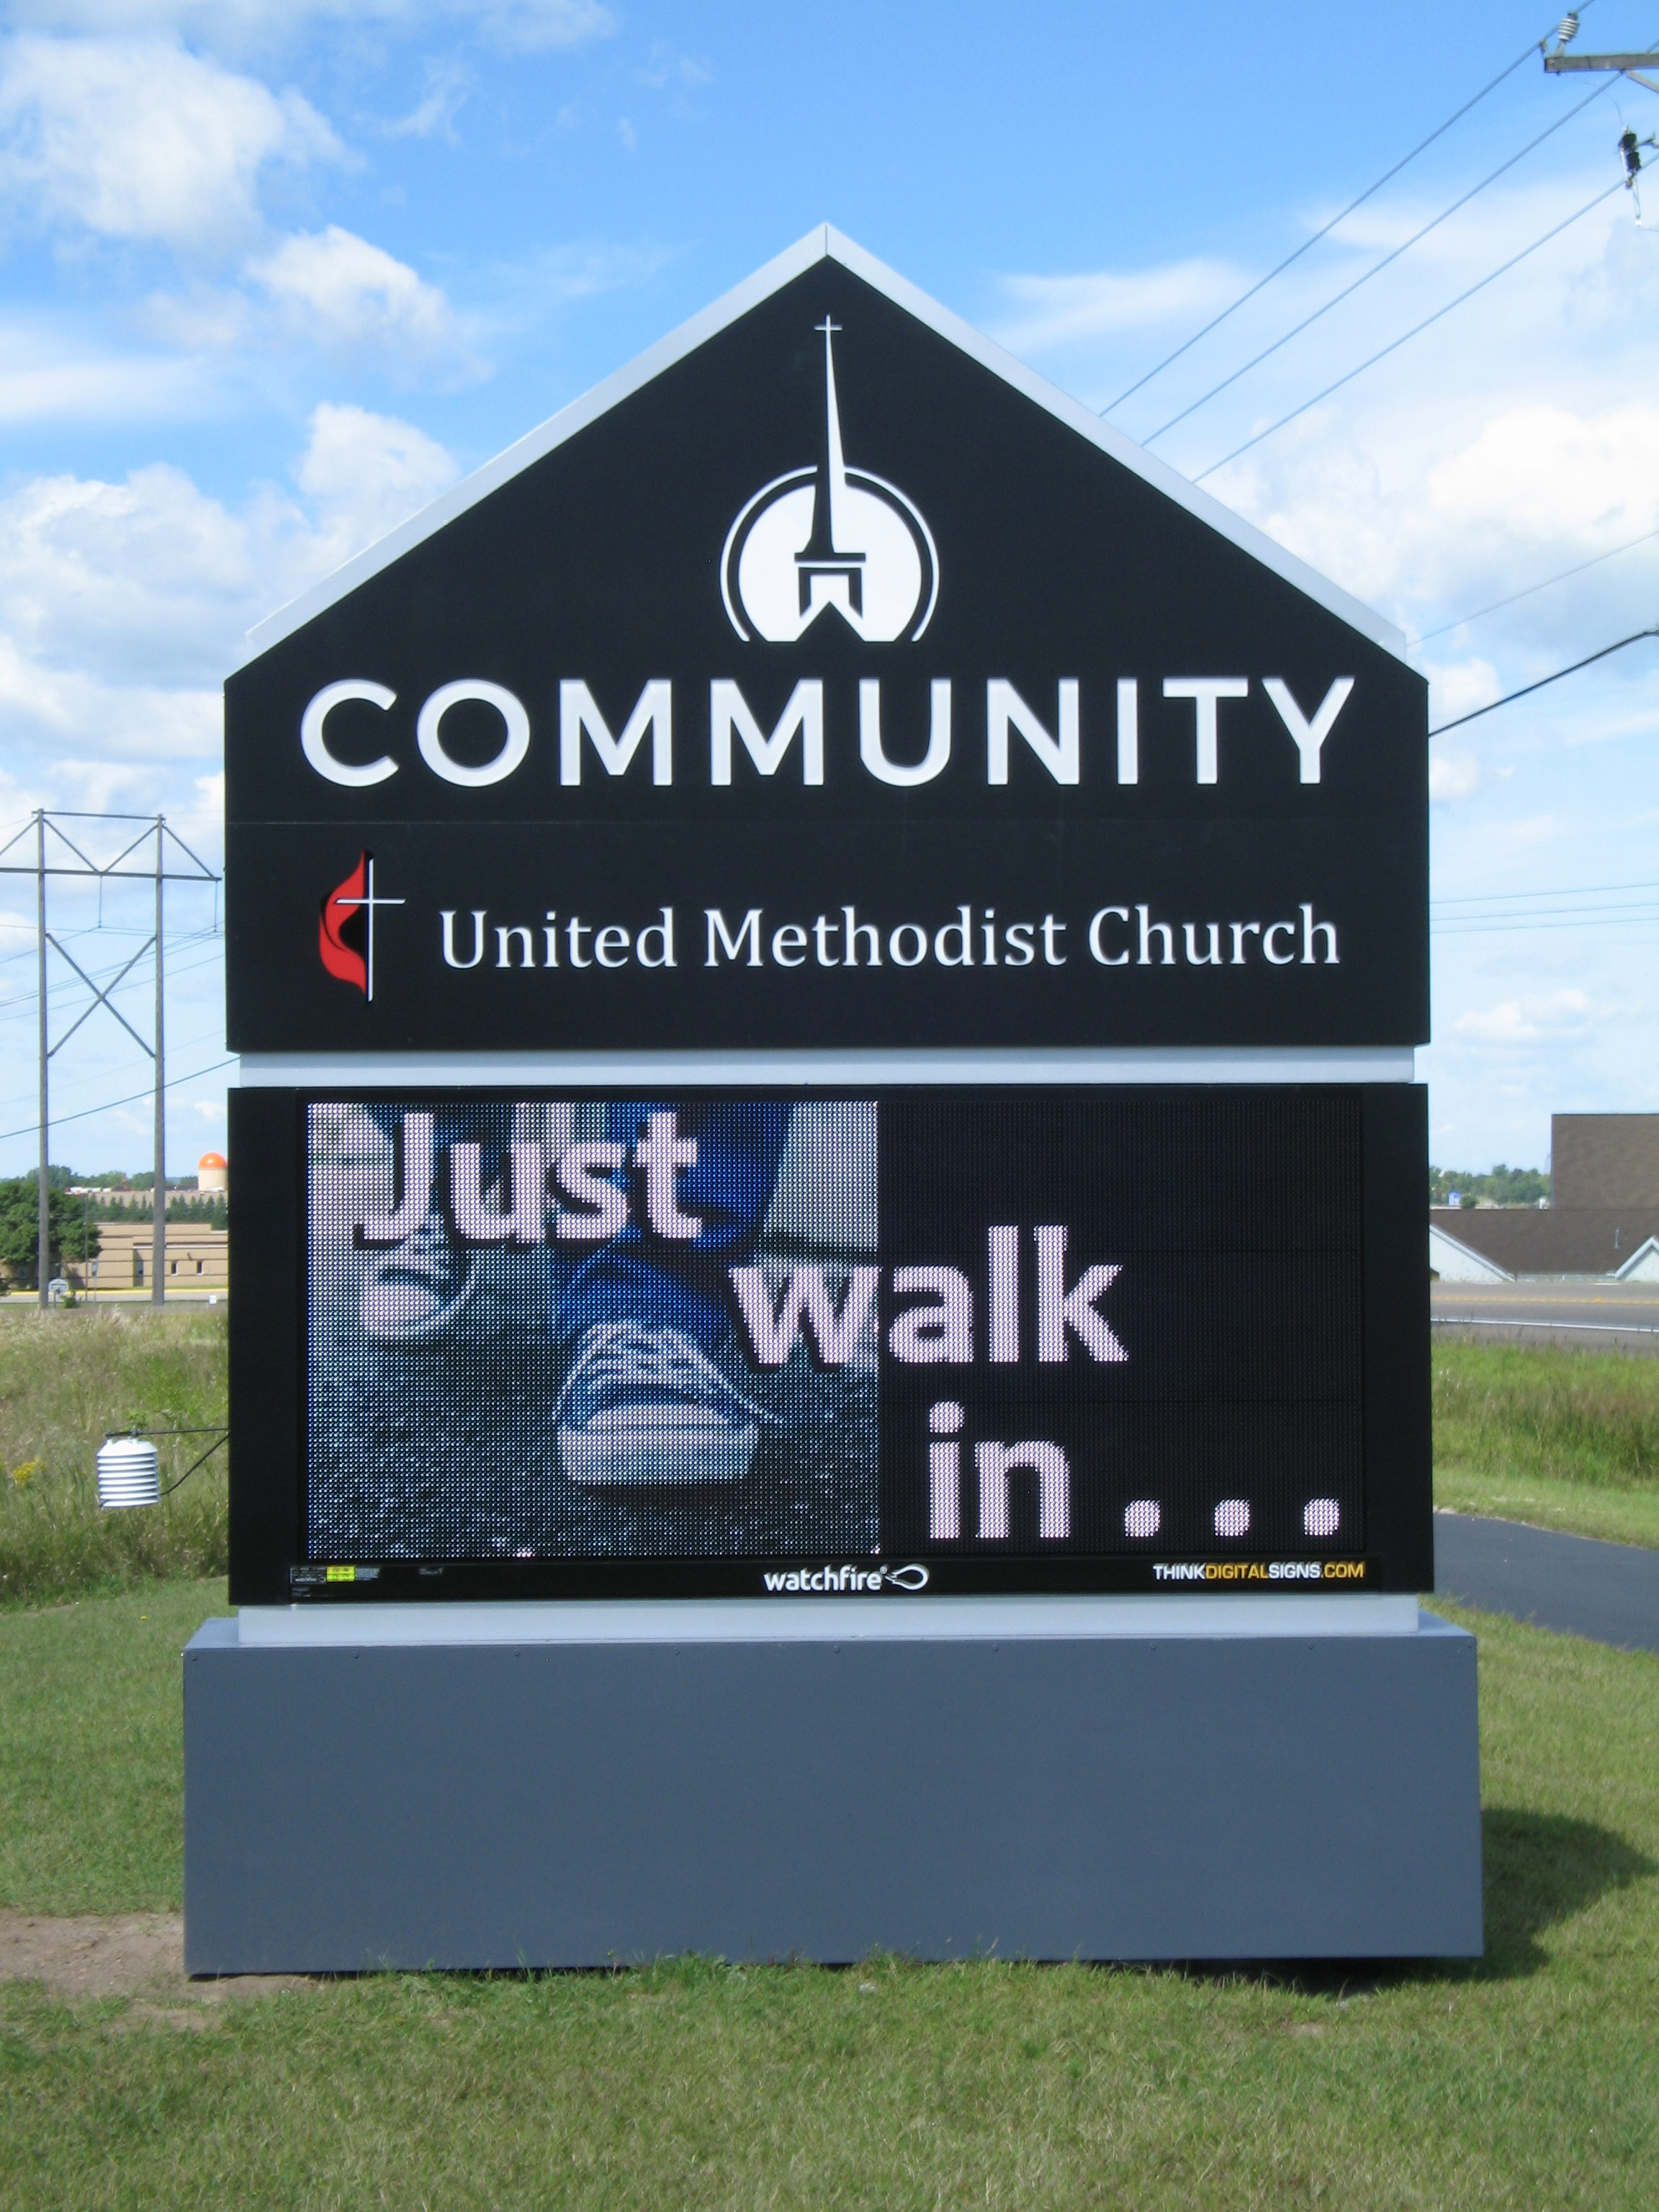 Cummunity United Methodist Church Monticello Electronic Message Center Sign